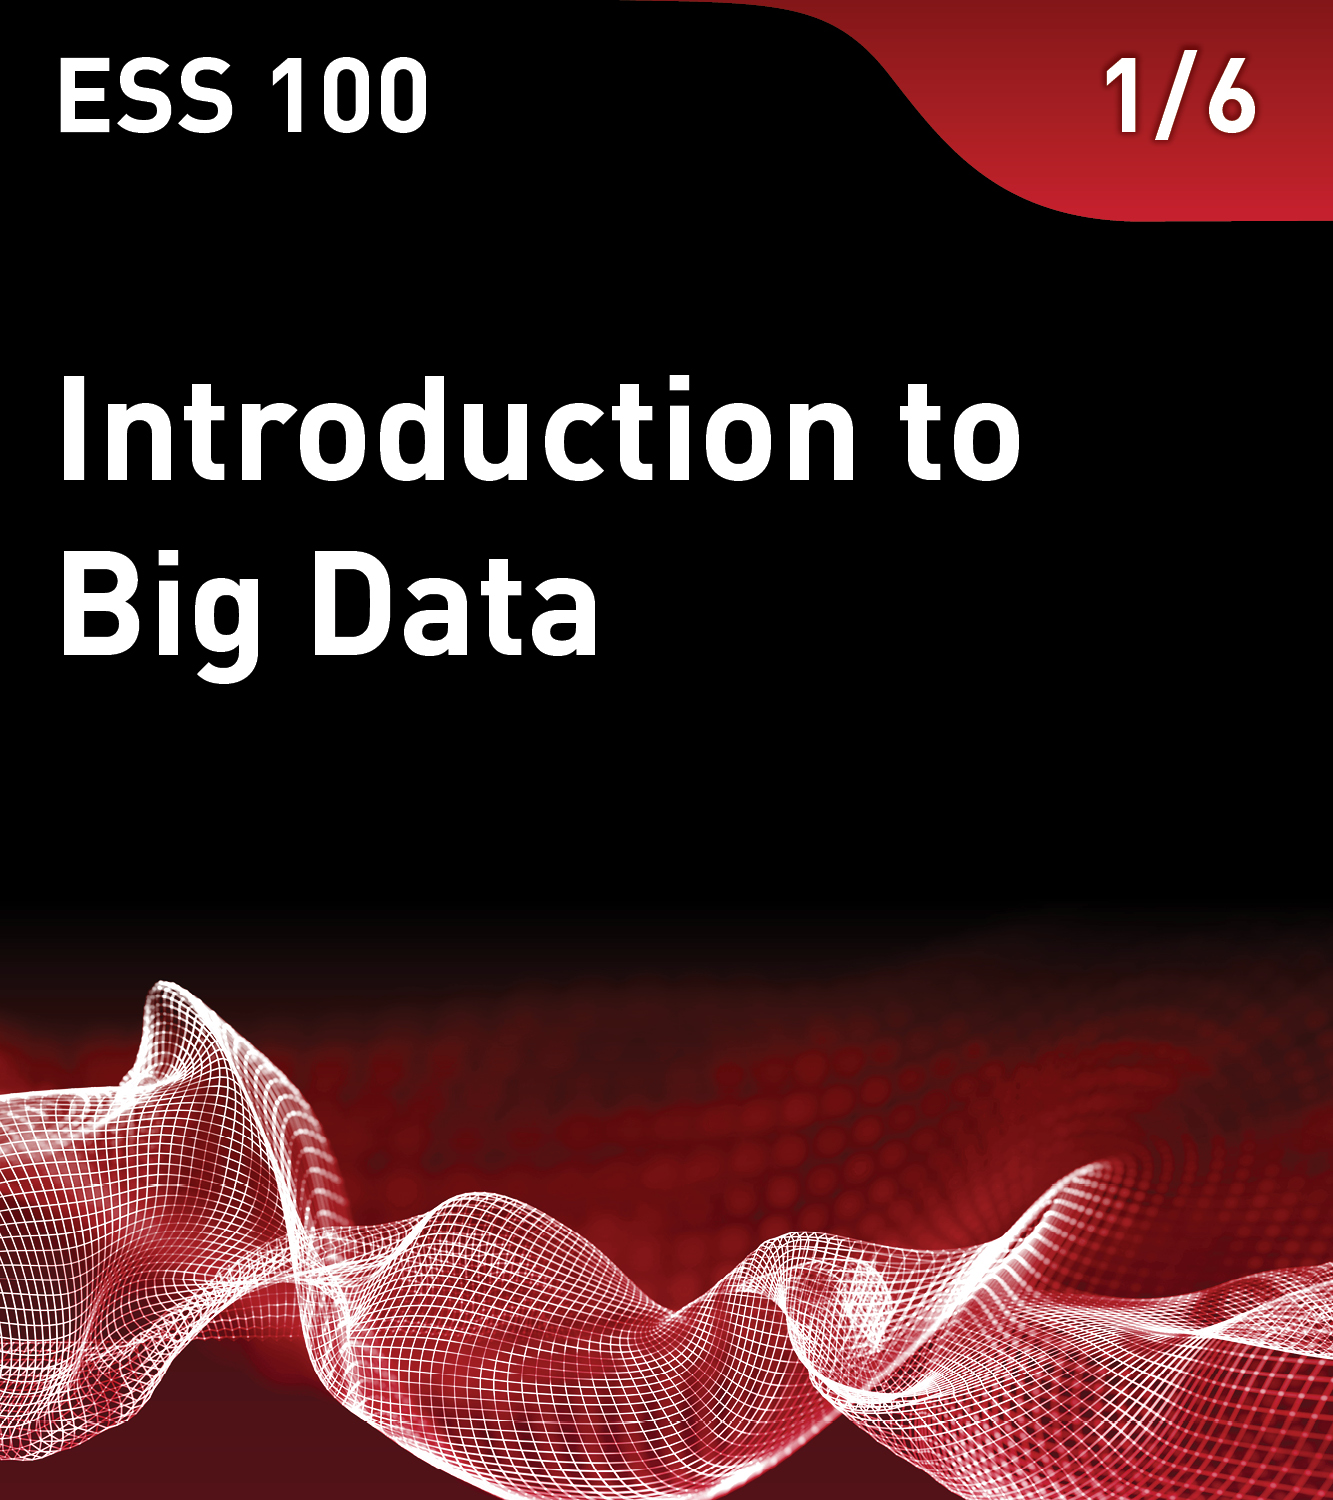 ESS 100 – Introduction to Big Data